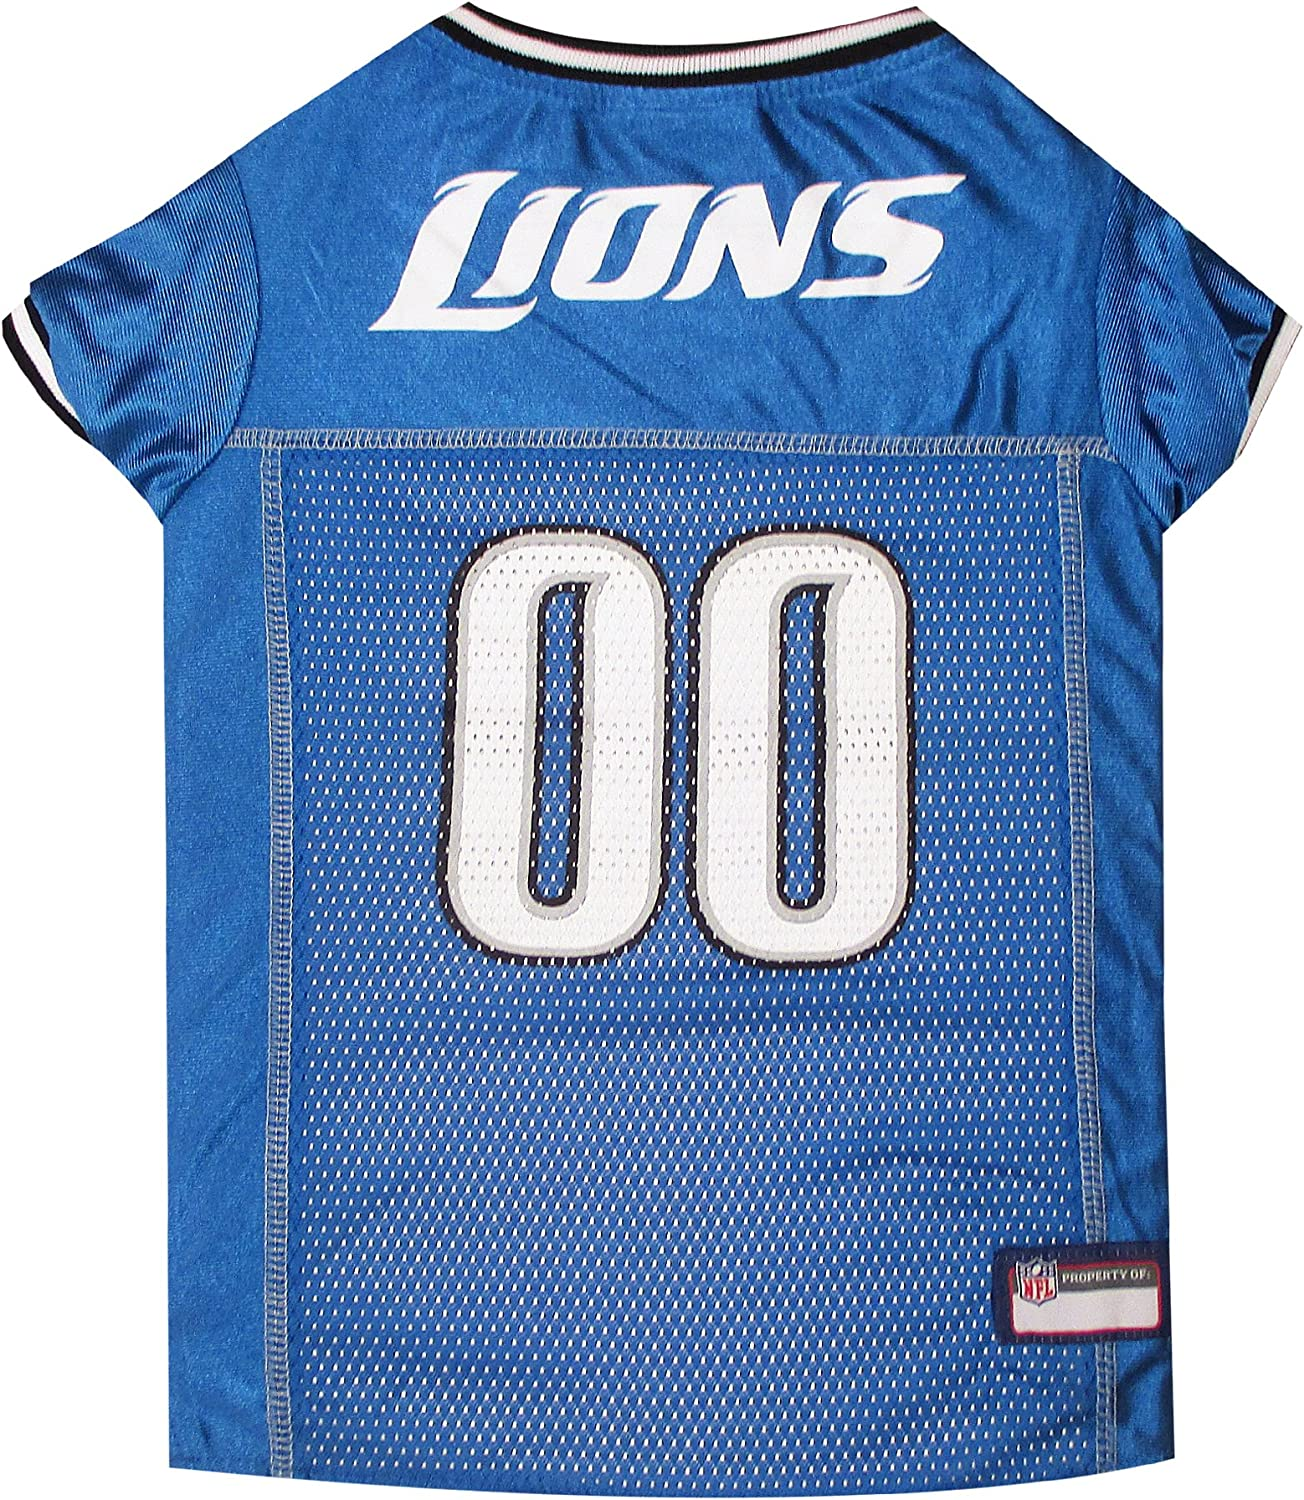 Mirage NFL Detroit Lions Dog Jersey, Small